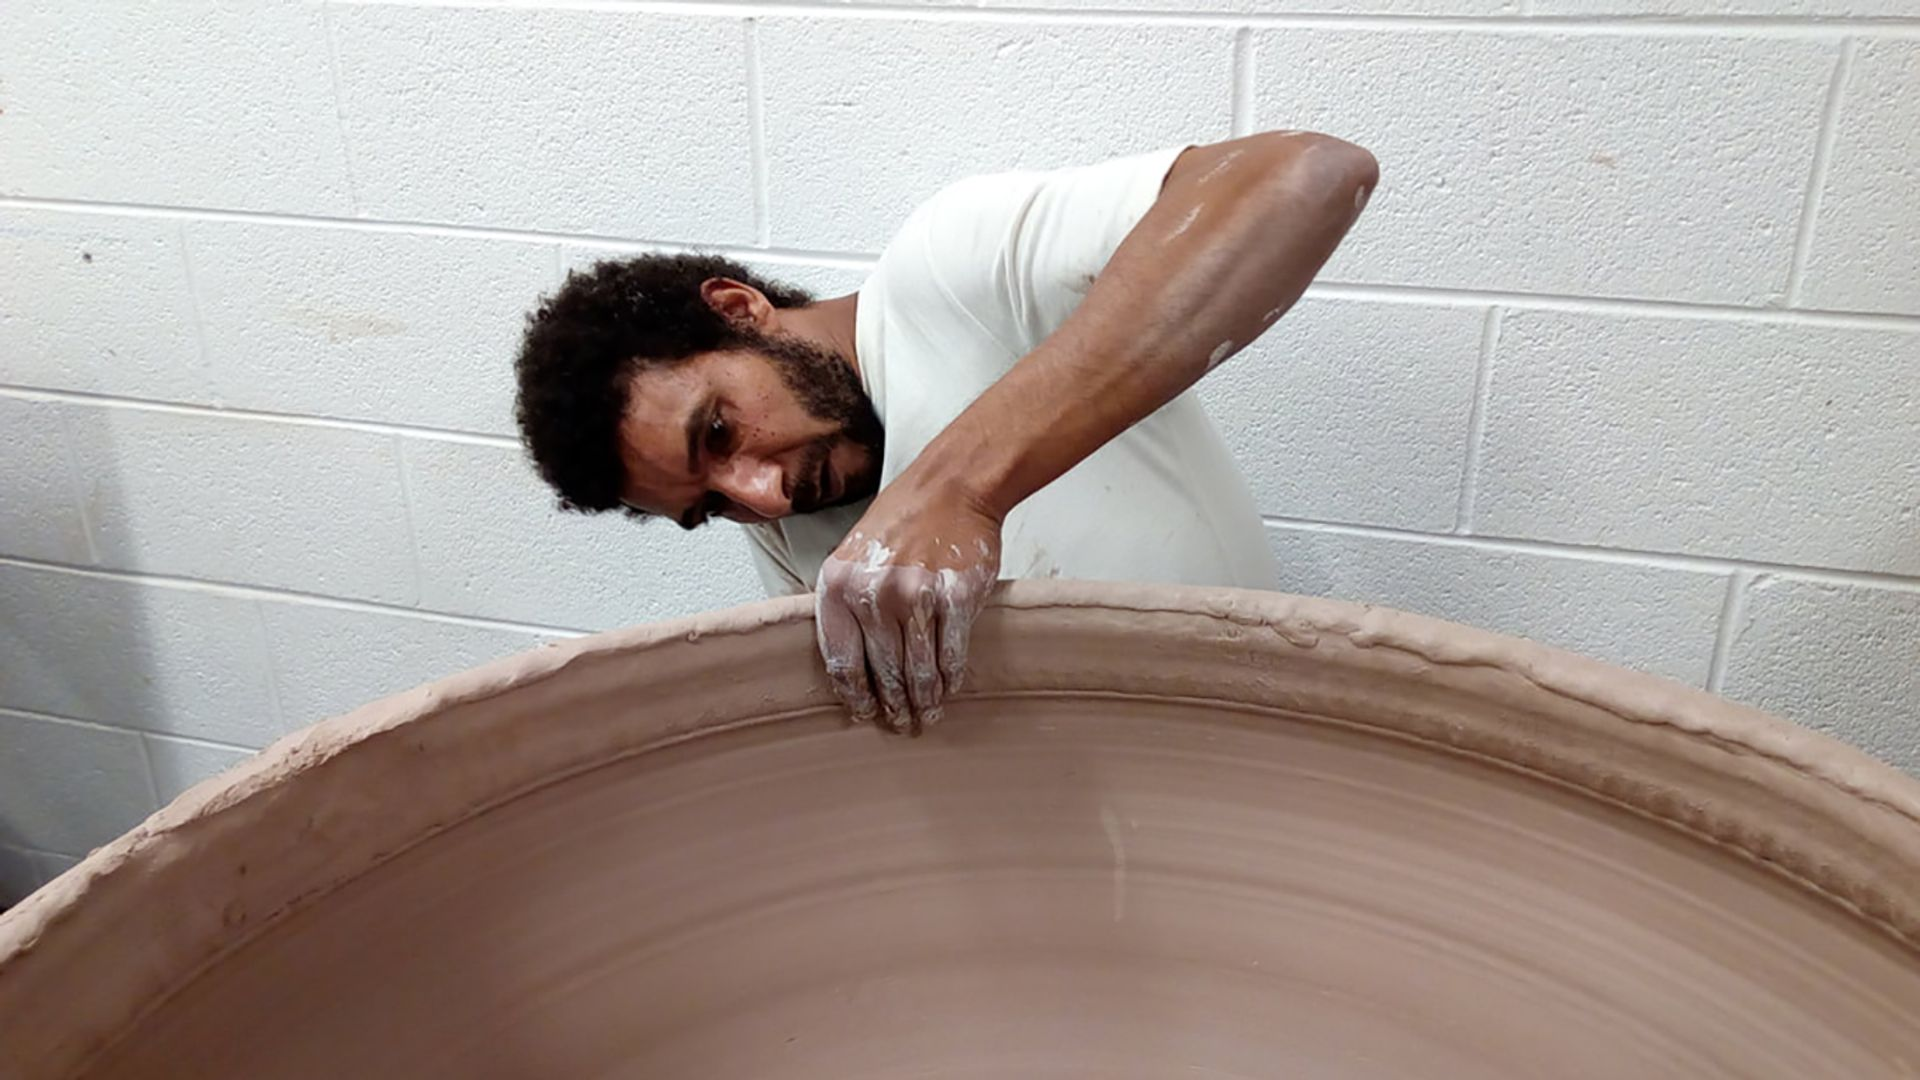 The artist Ibrahim Said, whose work is on view at the Clay Studio in Philadelphia. The studio has been awarded a project grant by the Pew Center for Arts & Heritage. Courtesy of the Clay Studio